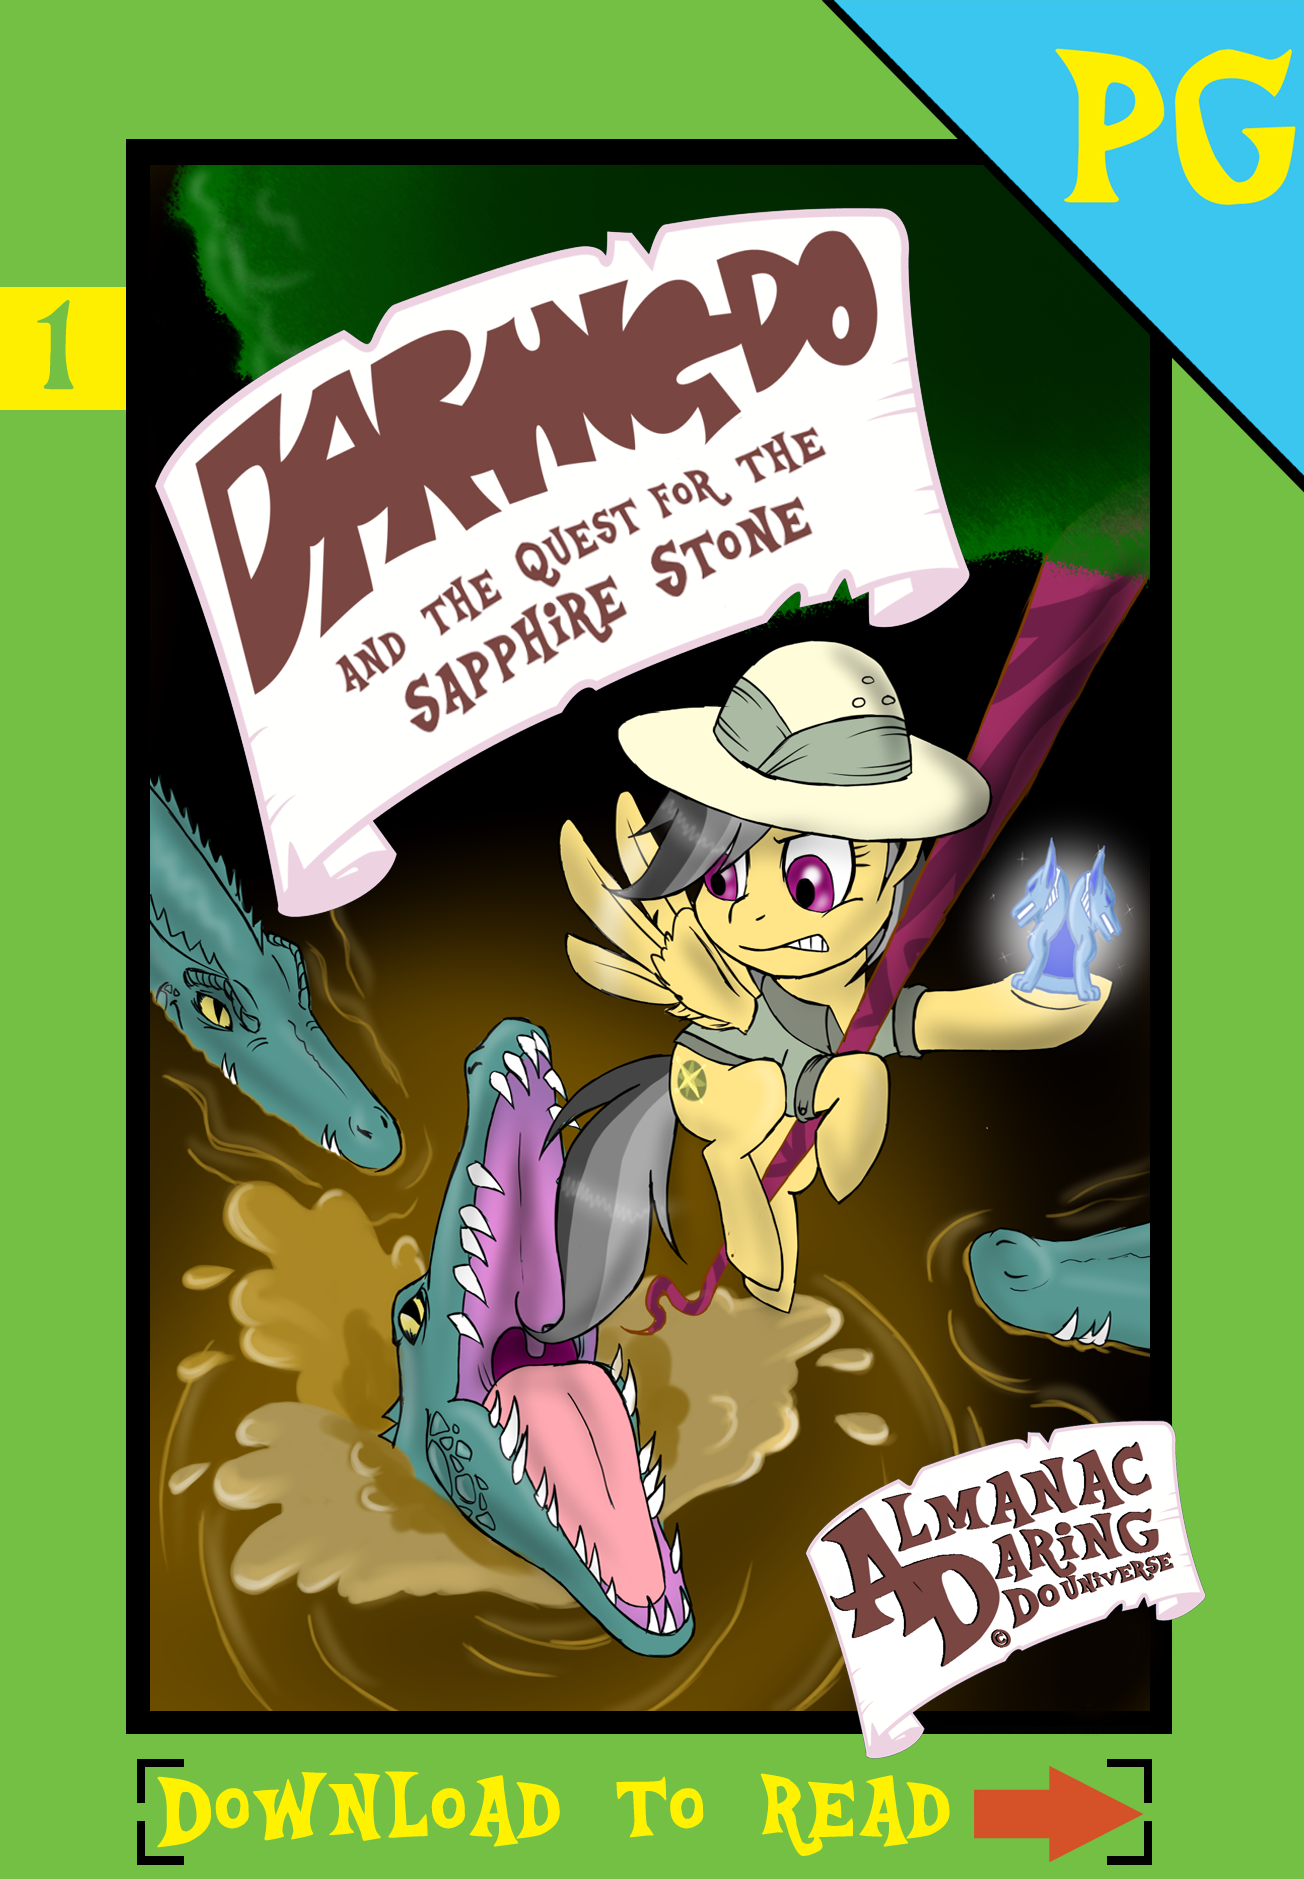 (1) Daring Do and the Quest for the Sapphire Stone by AlmanacPony